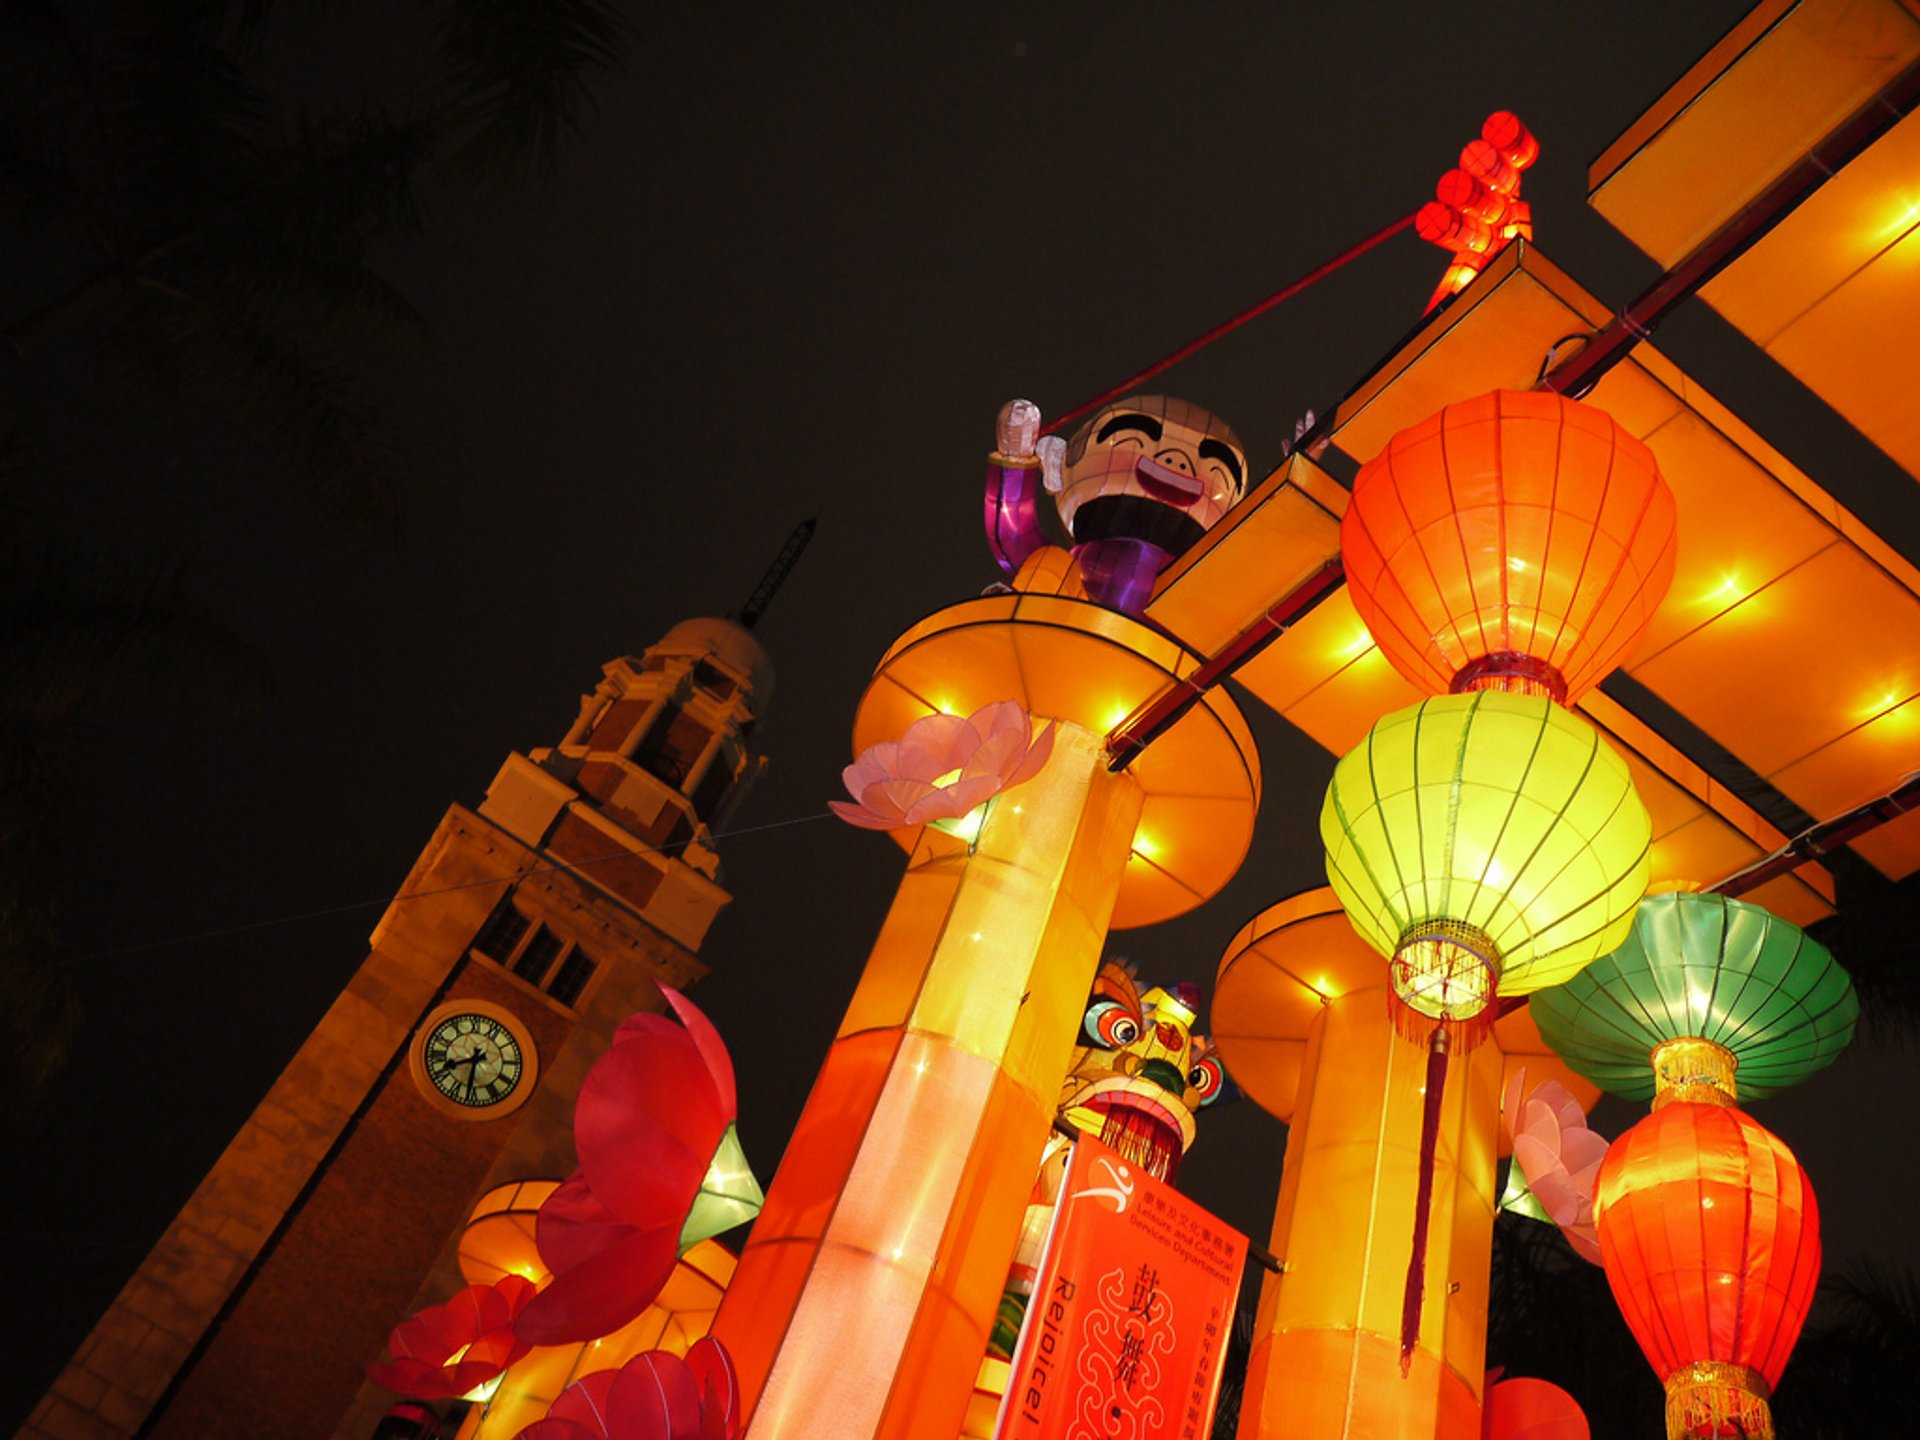 Lanterns at Kowloon Public Pier 2020